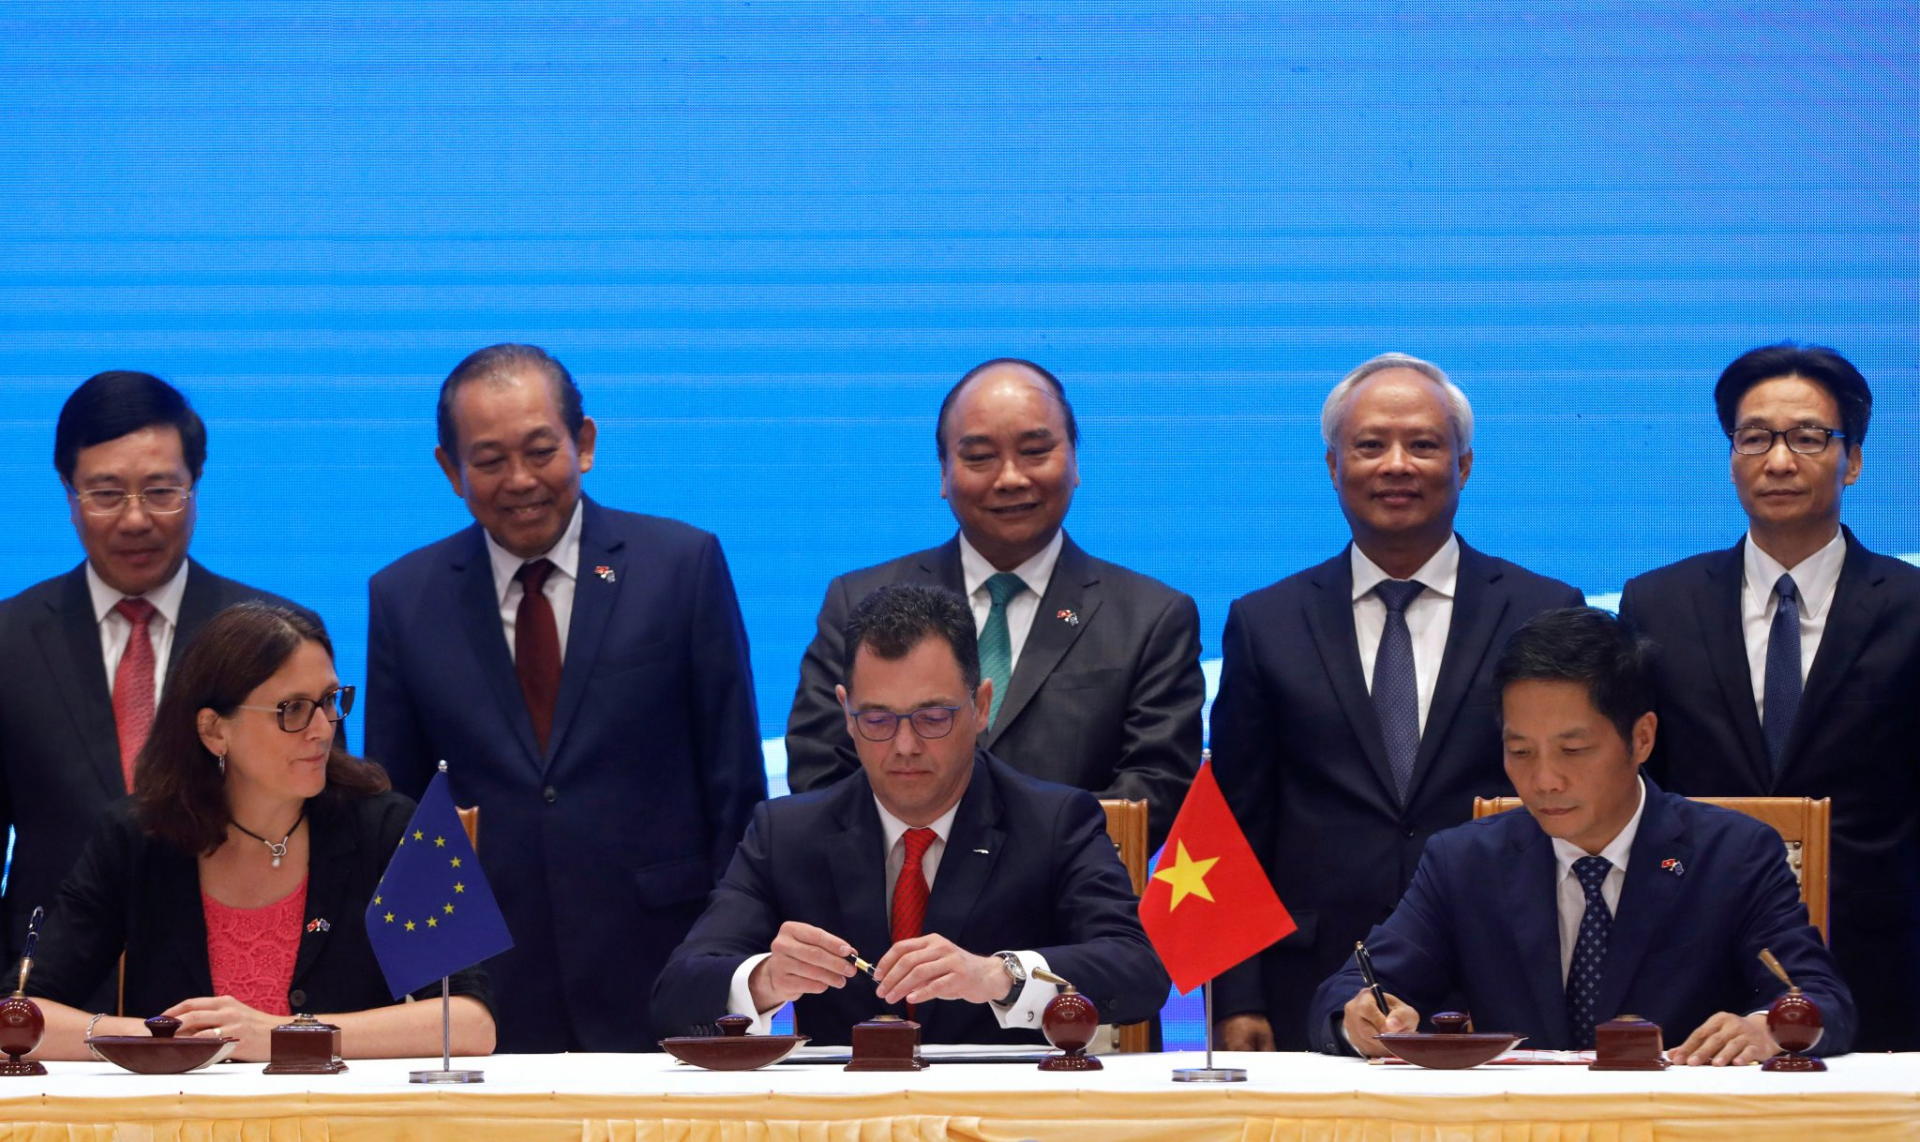 Vietnam possibly emerges as one of EU